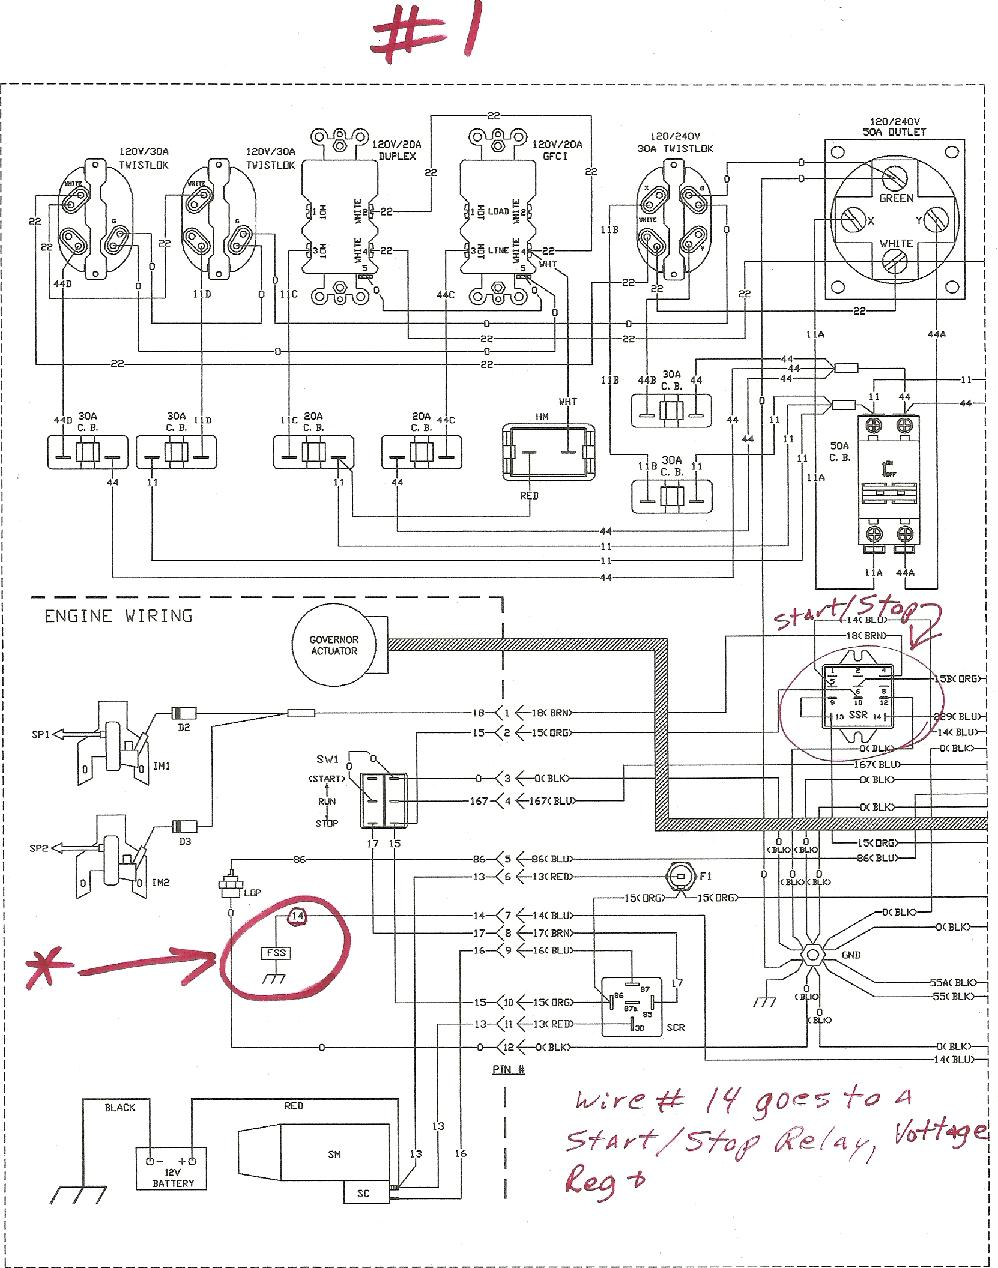 Manuals together with Yamaha R6 Ignition Wiring Diagram further Yamaha V Star 1100 Fuse Box Location likewise Kawasaki Kx 250 Engine Diagram in addition 1999 Ninja 250 Wiring Diagram. on kawasaki r1 wiring diagram